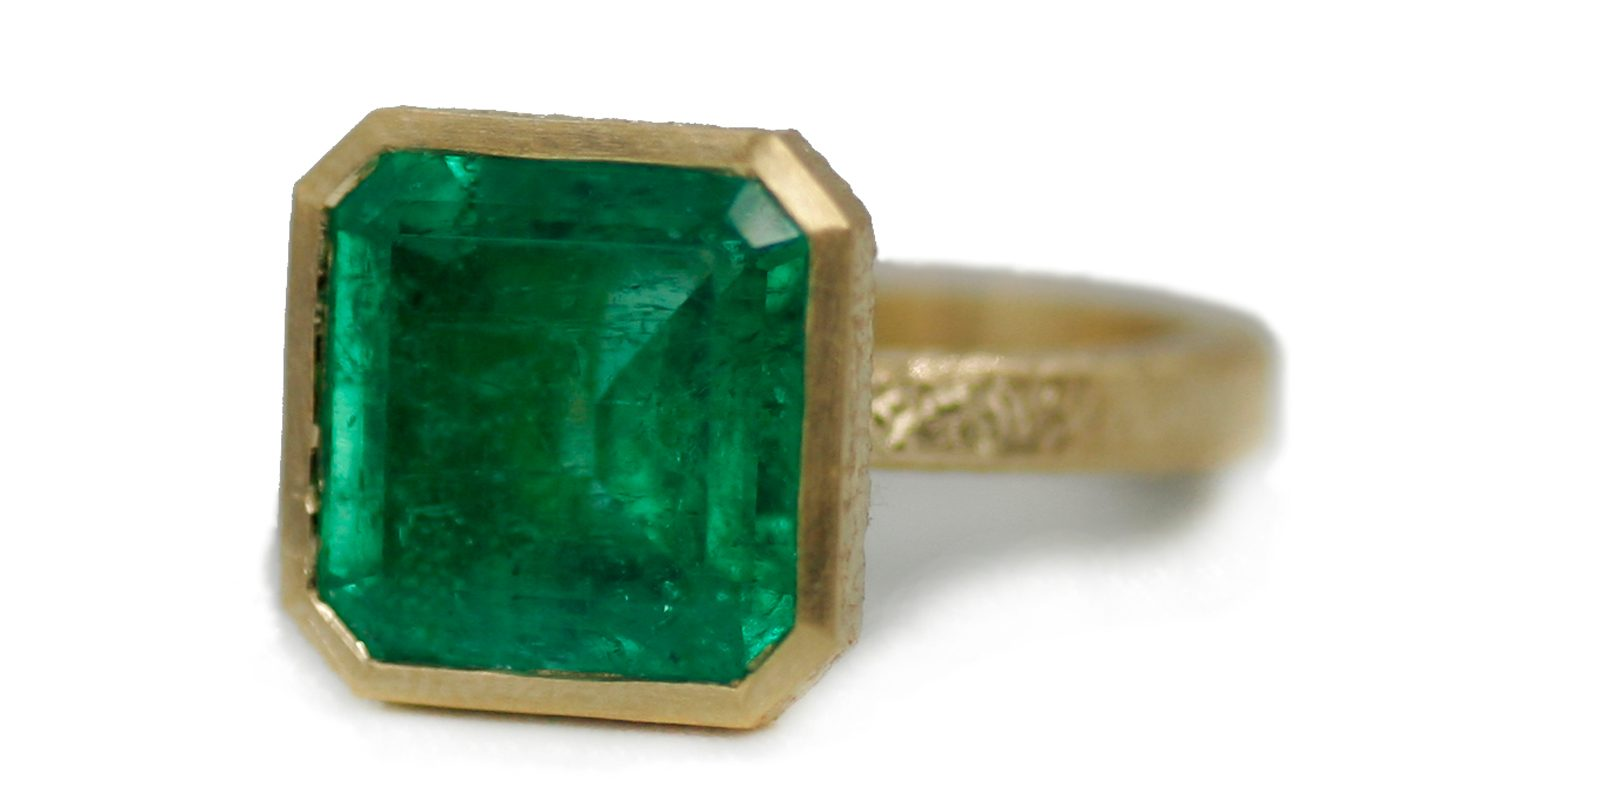 Abra's Emerald Cocktail Ring